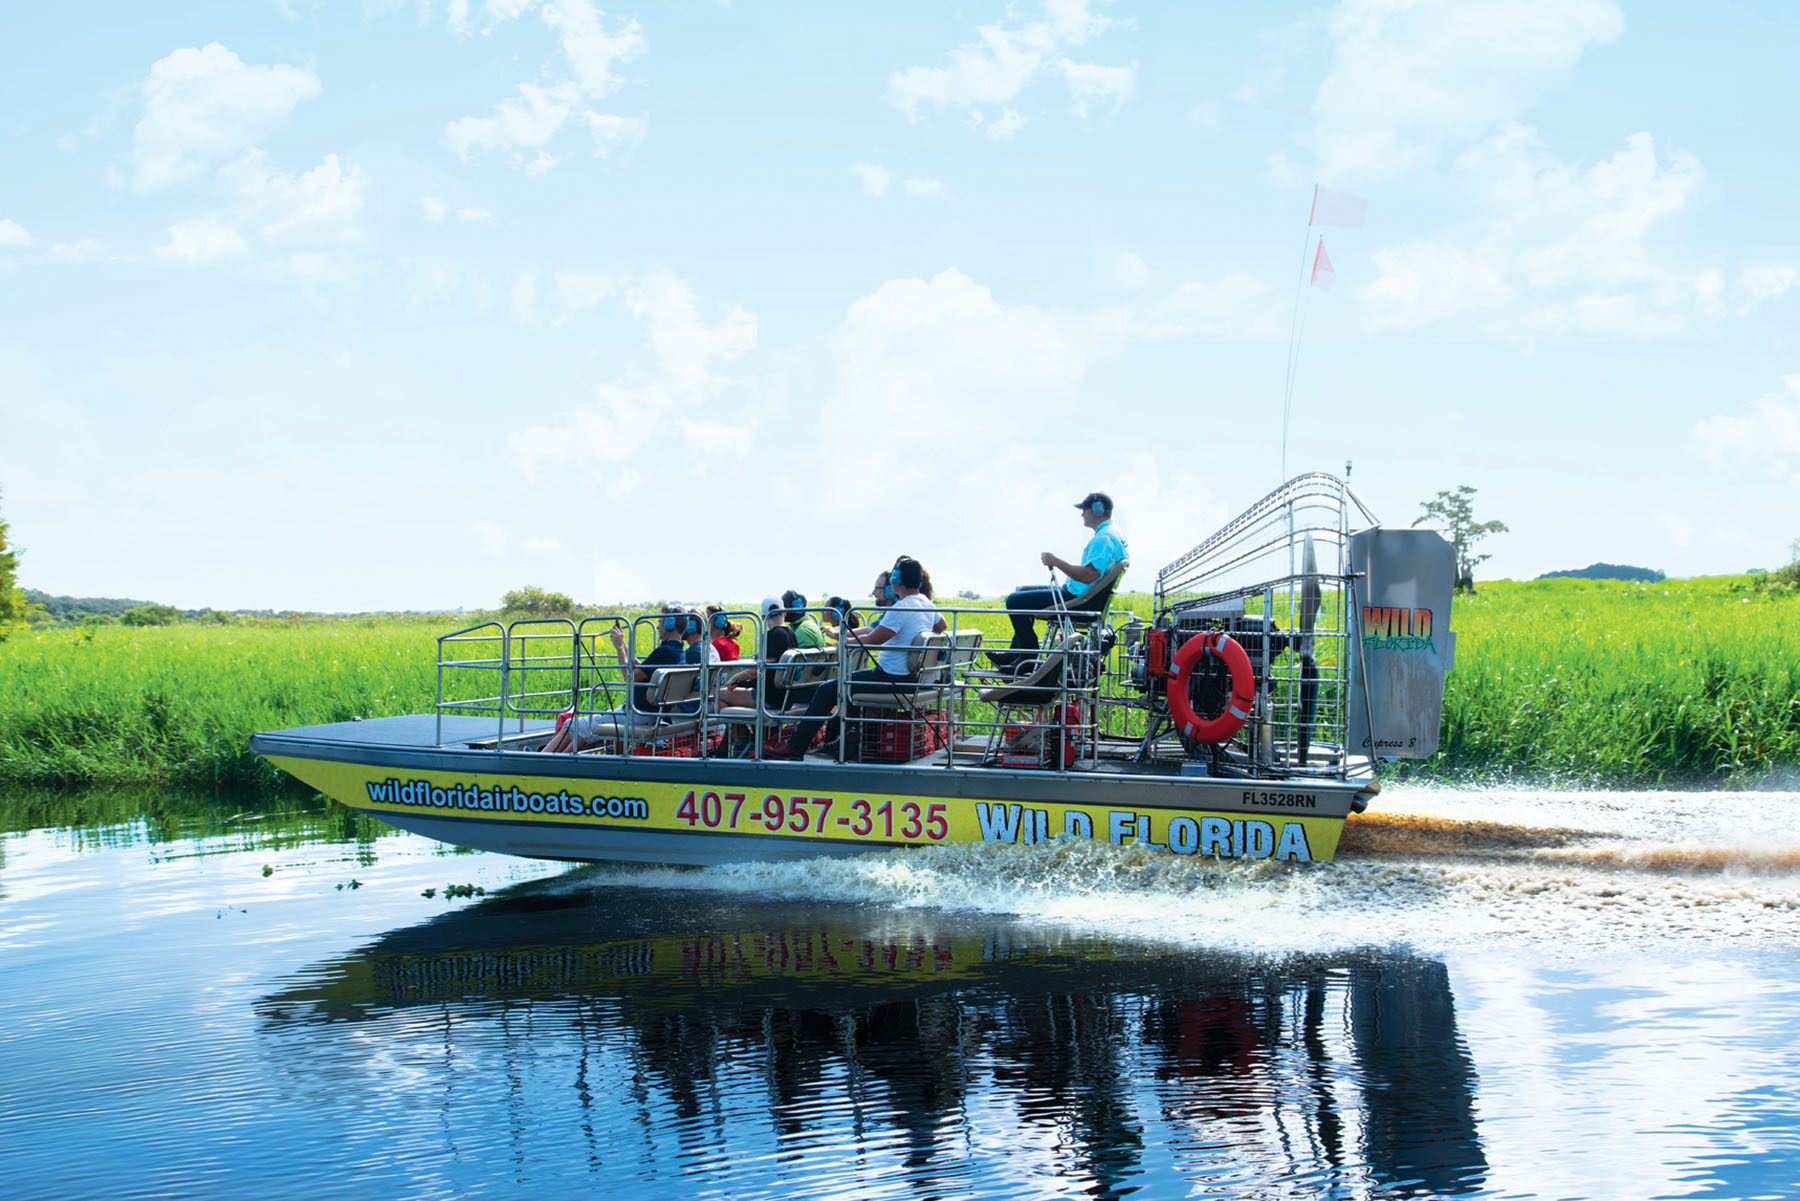 An airboat tours the waters at Wild Florida